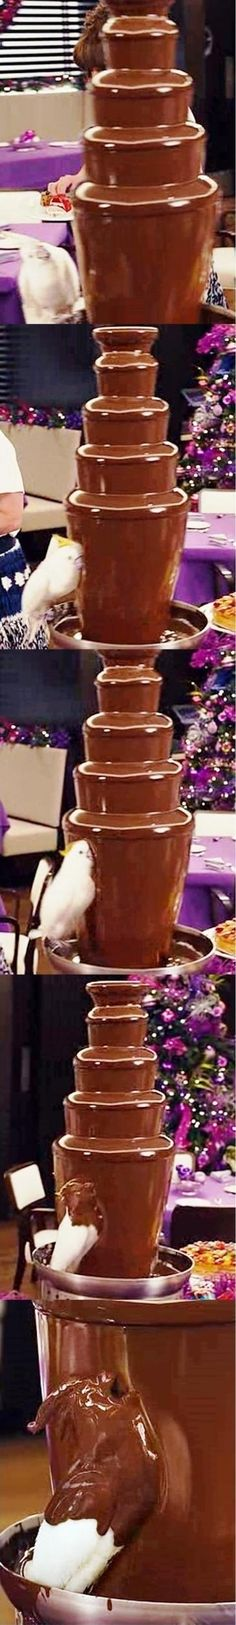 This is how you make chocolate covered bird, I wondered about that.  Is this how they do the rabbits too?